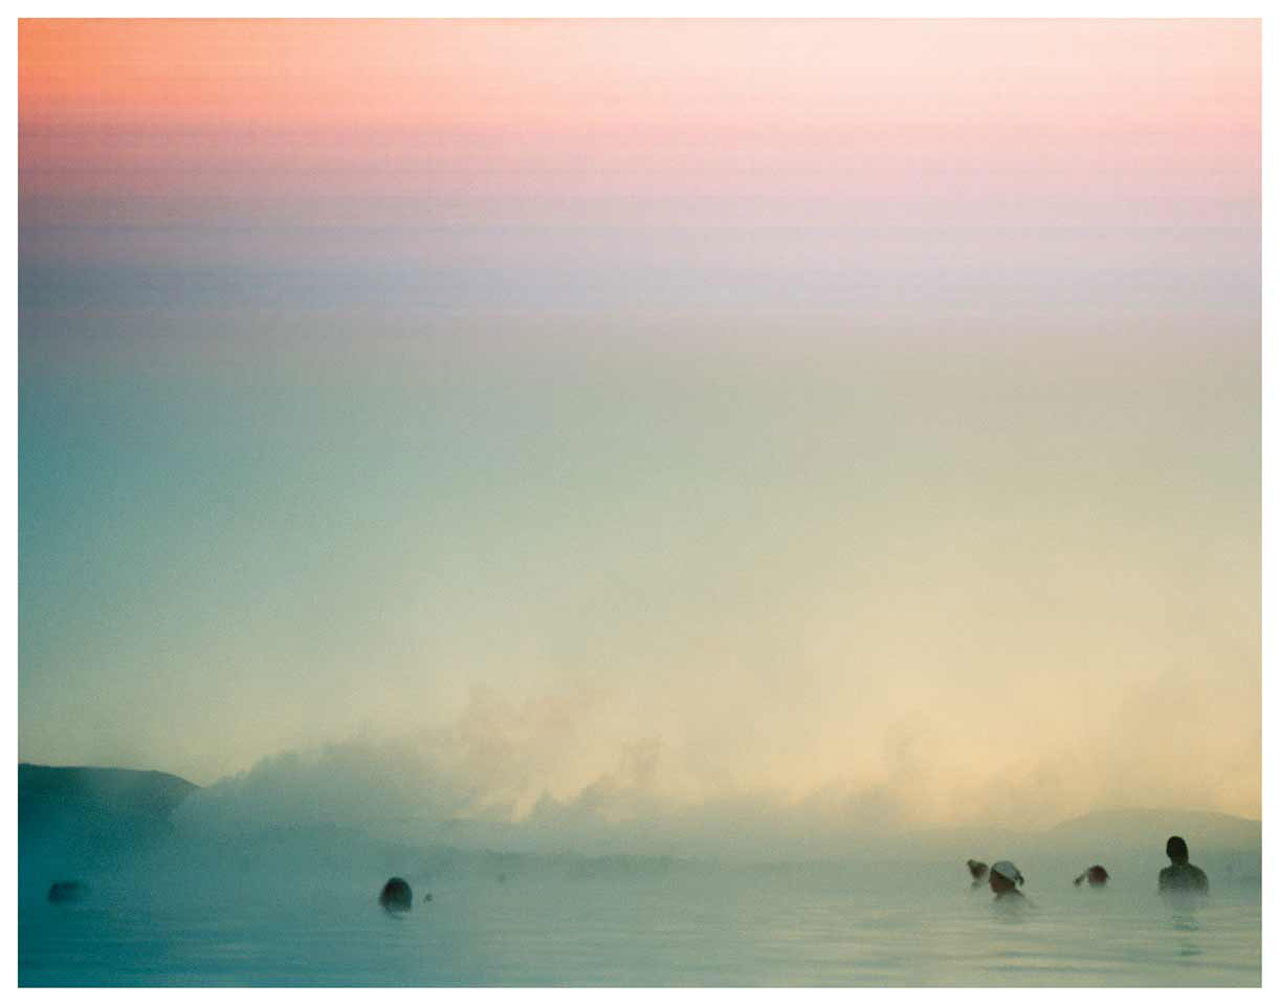 Sara Naim, 'Landscape 1, Sunrise', 2010, C-type Digital Print, 71.12 x 48.26 cm. Image courtesy the artist and The Third Line.